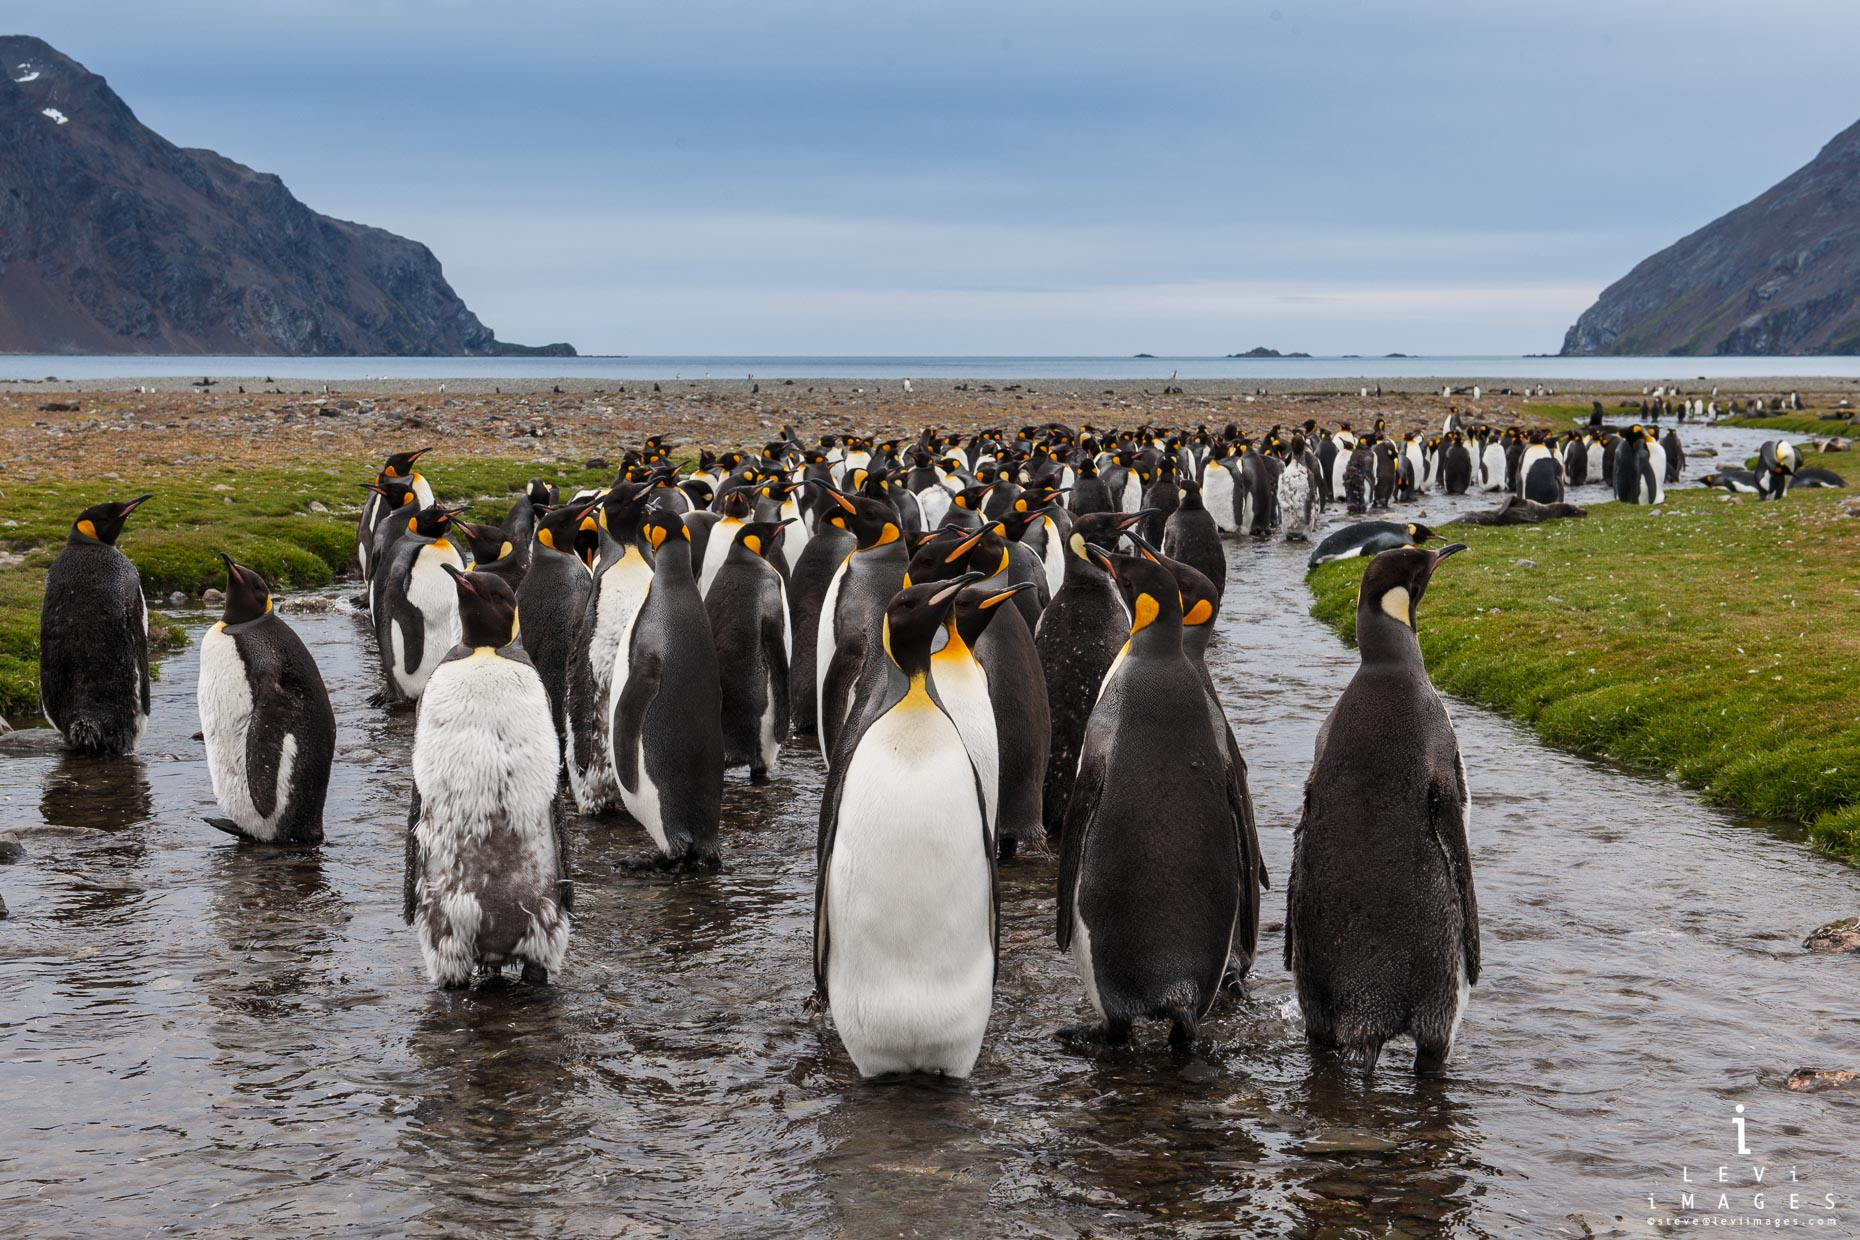 King penguins (Aptenodytes patagonicus). Saint Andrews Bay, South Georgia Island